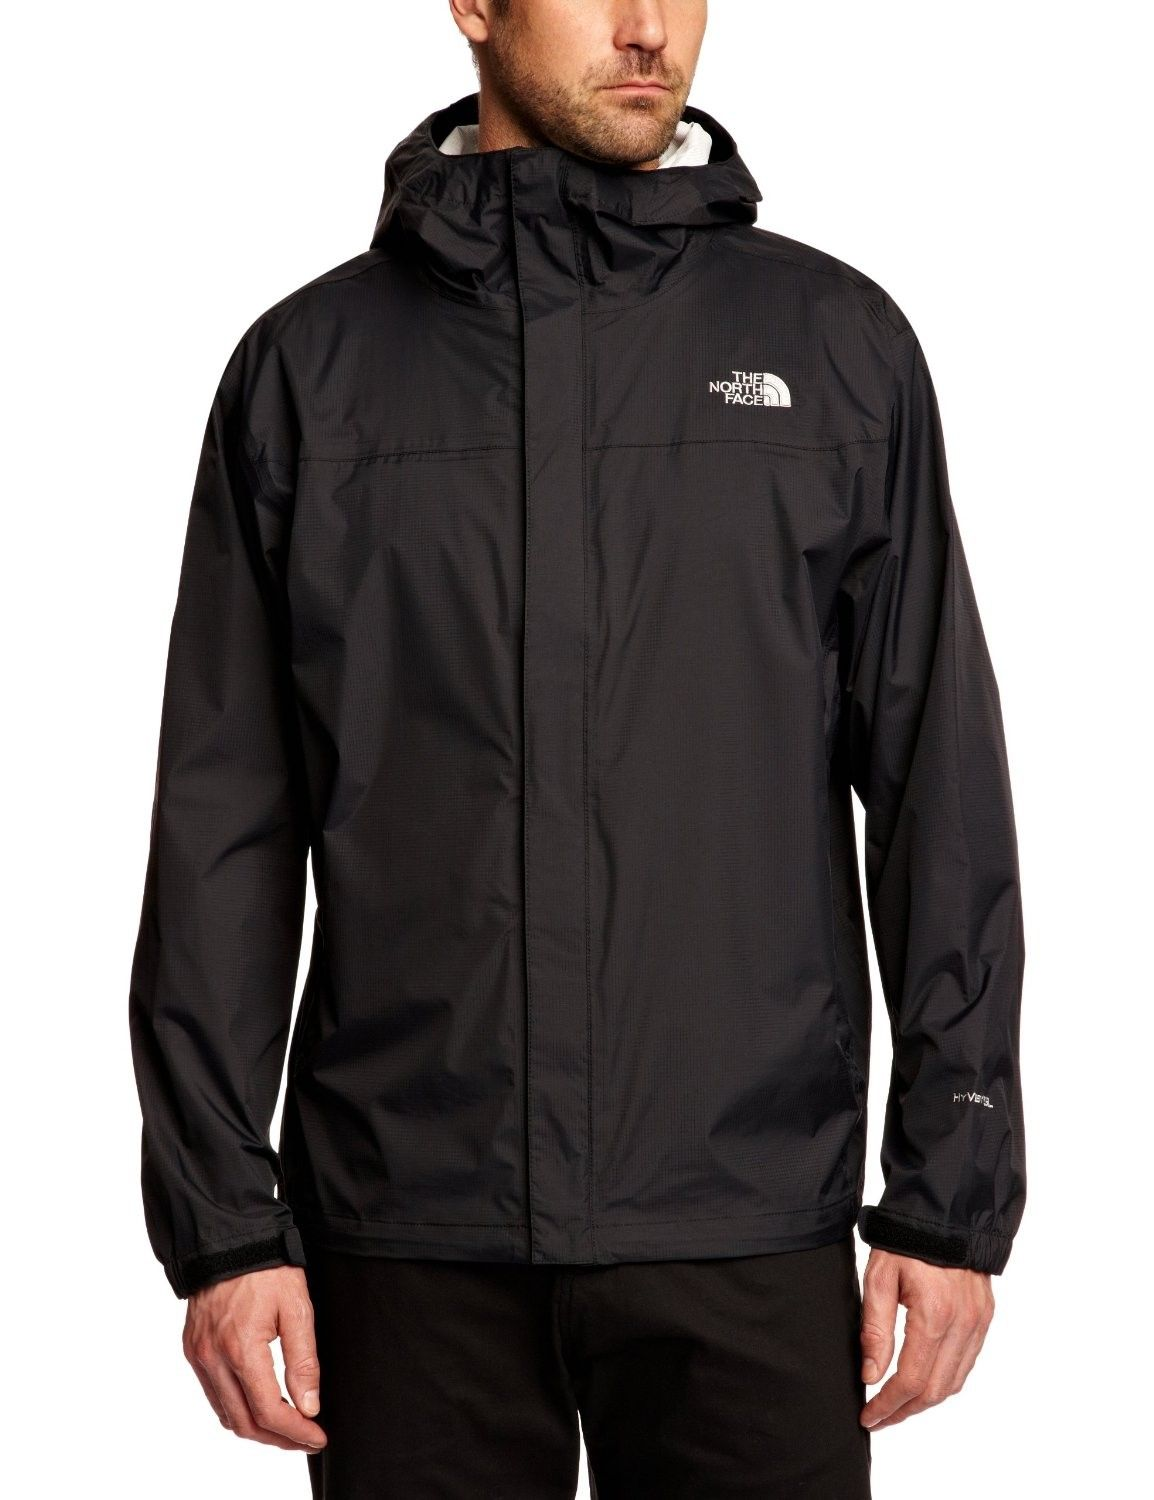 The North Face Jacket The North Face Tanken Triclimate Jacket Best Rain Jacket North Face Jacket North Face Mens [ 1500 x 1154 Pixel ]